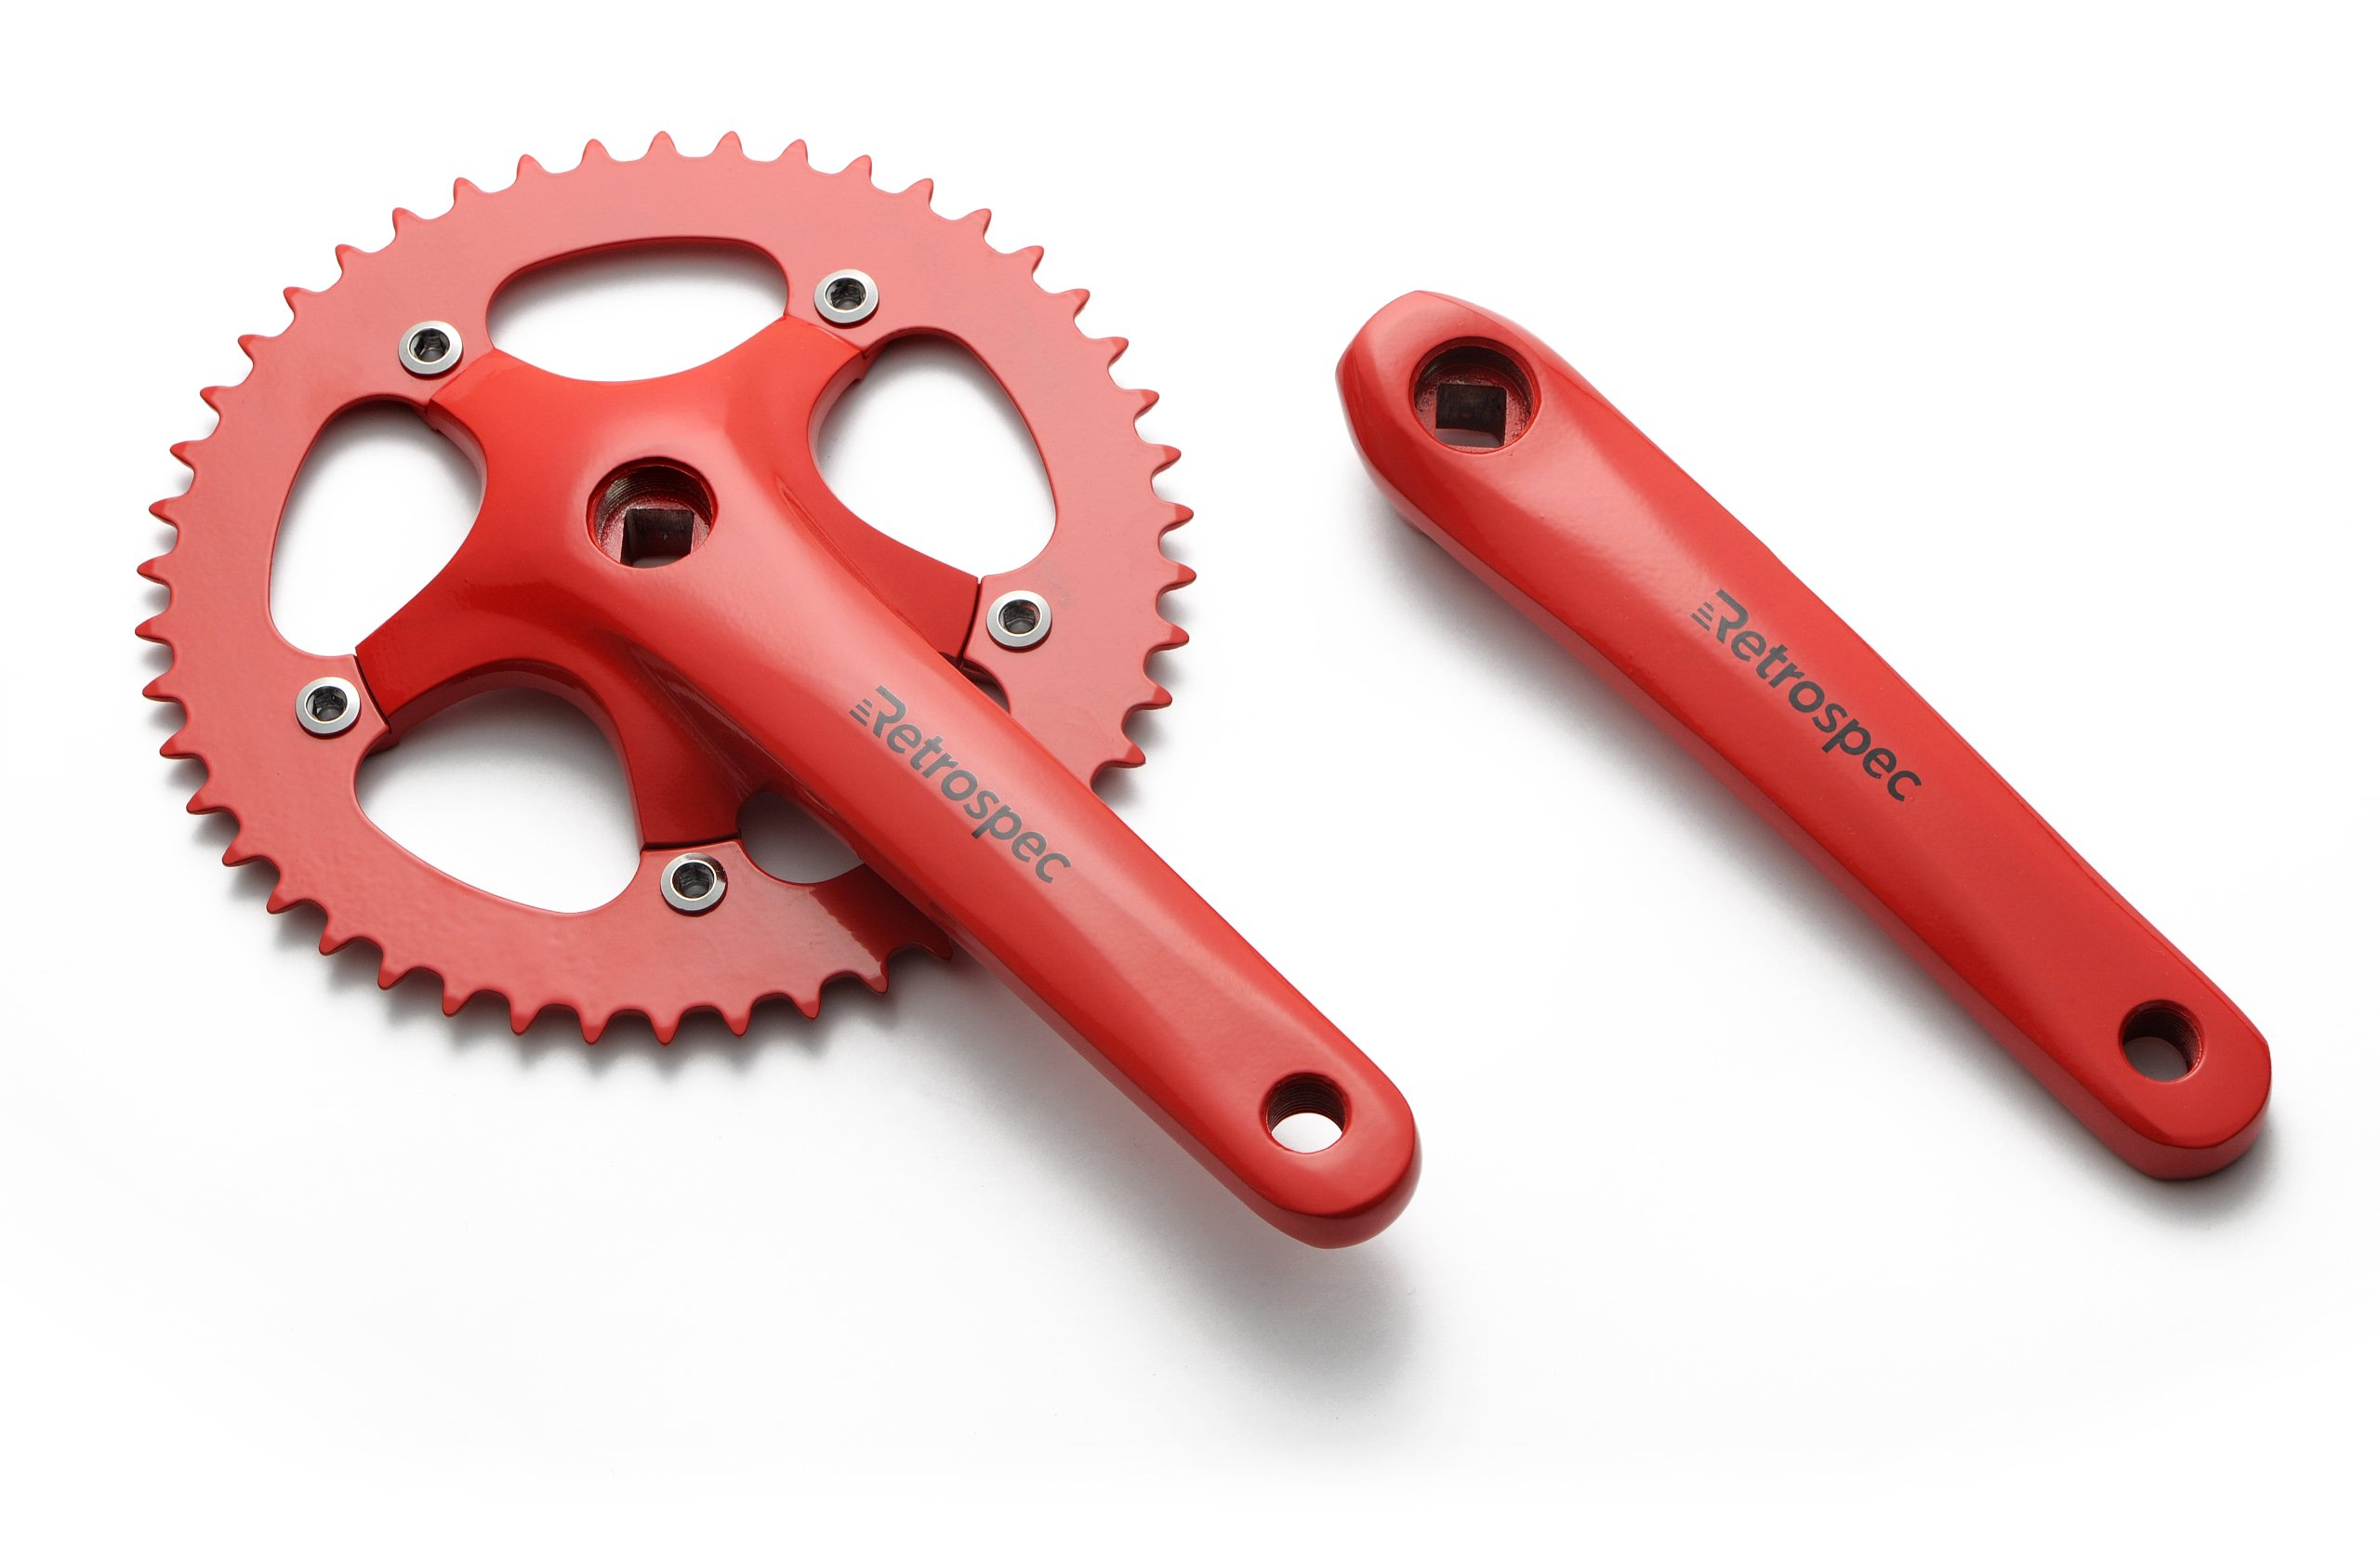 Retrospec Bicycles Fixed-Gear Crank Single-Speed Road Bicycle Forged Crankset, Red, 46T by Retrospec